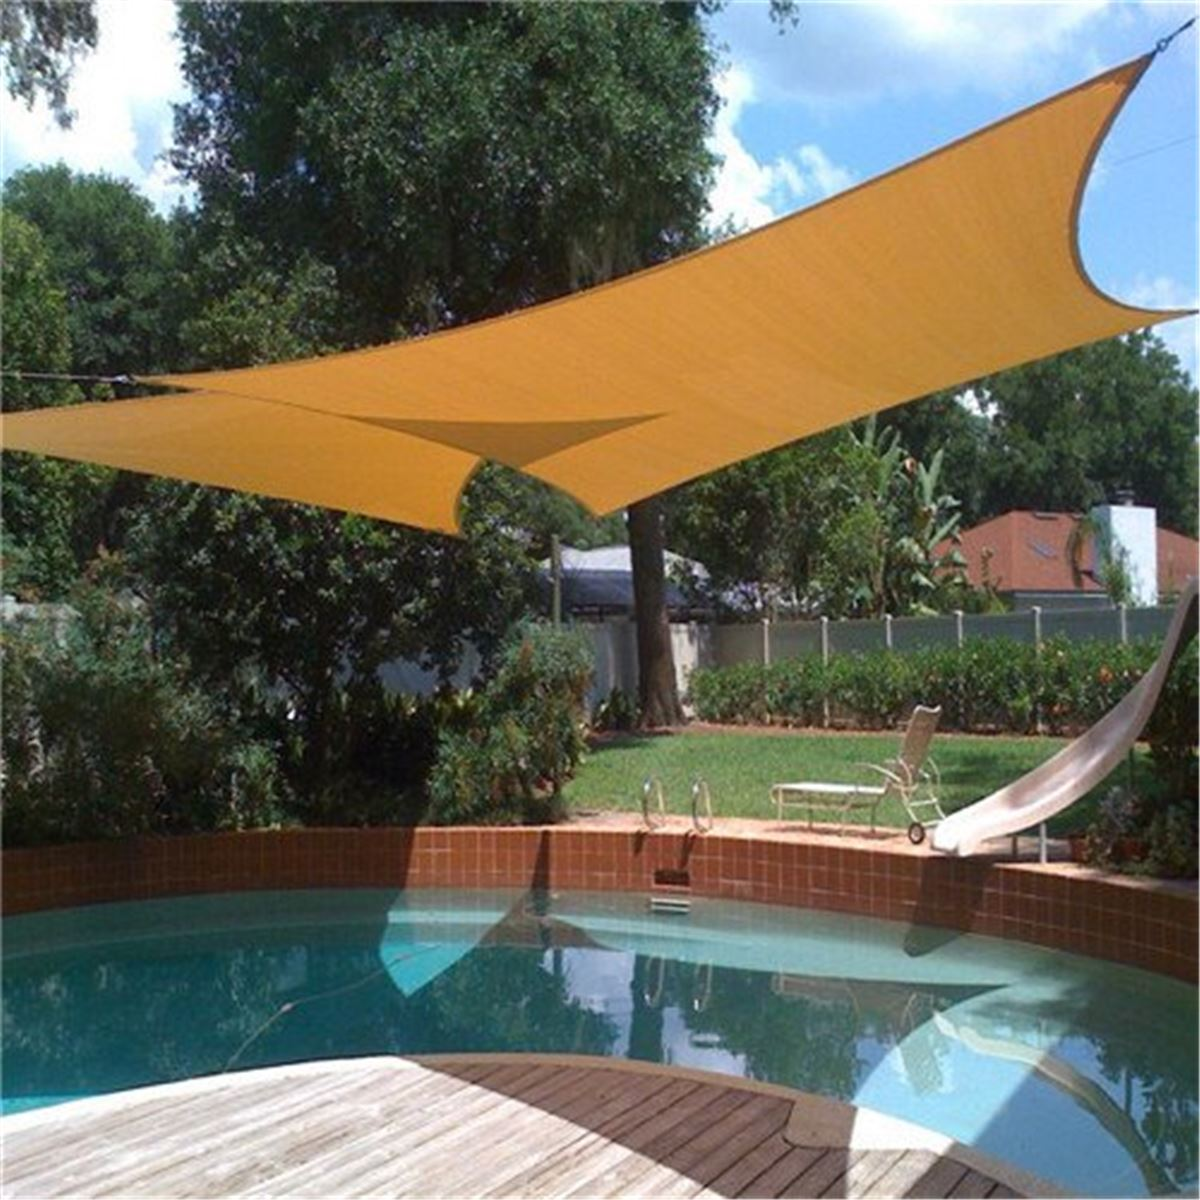 Beige Sun Shade Awning 2X1.8m Sun Block Sail Shelter Net Outdoor Garden Car Cover  Canopy Patio Swimming Pool Sunscreen Tools